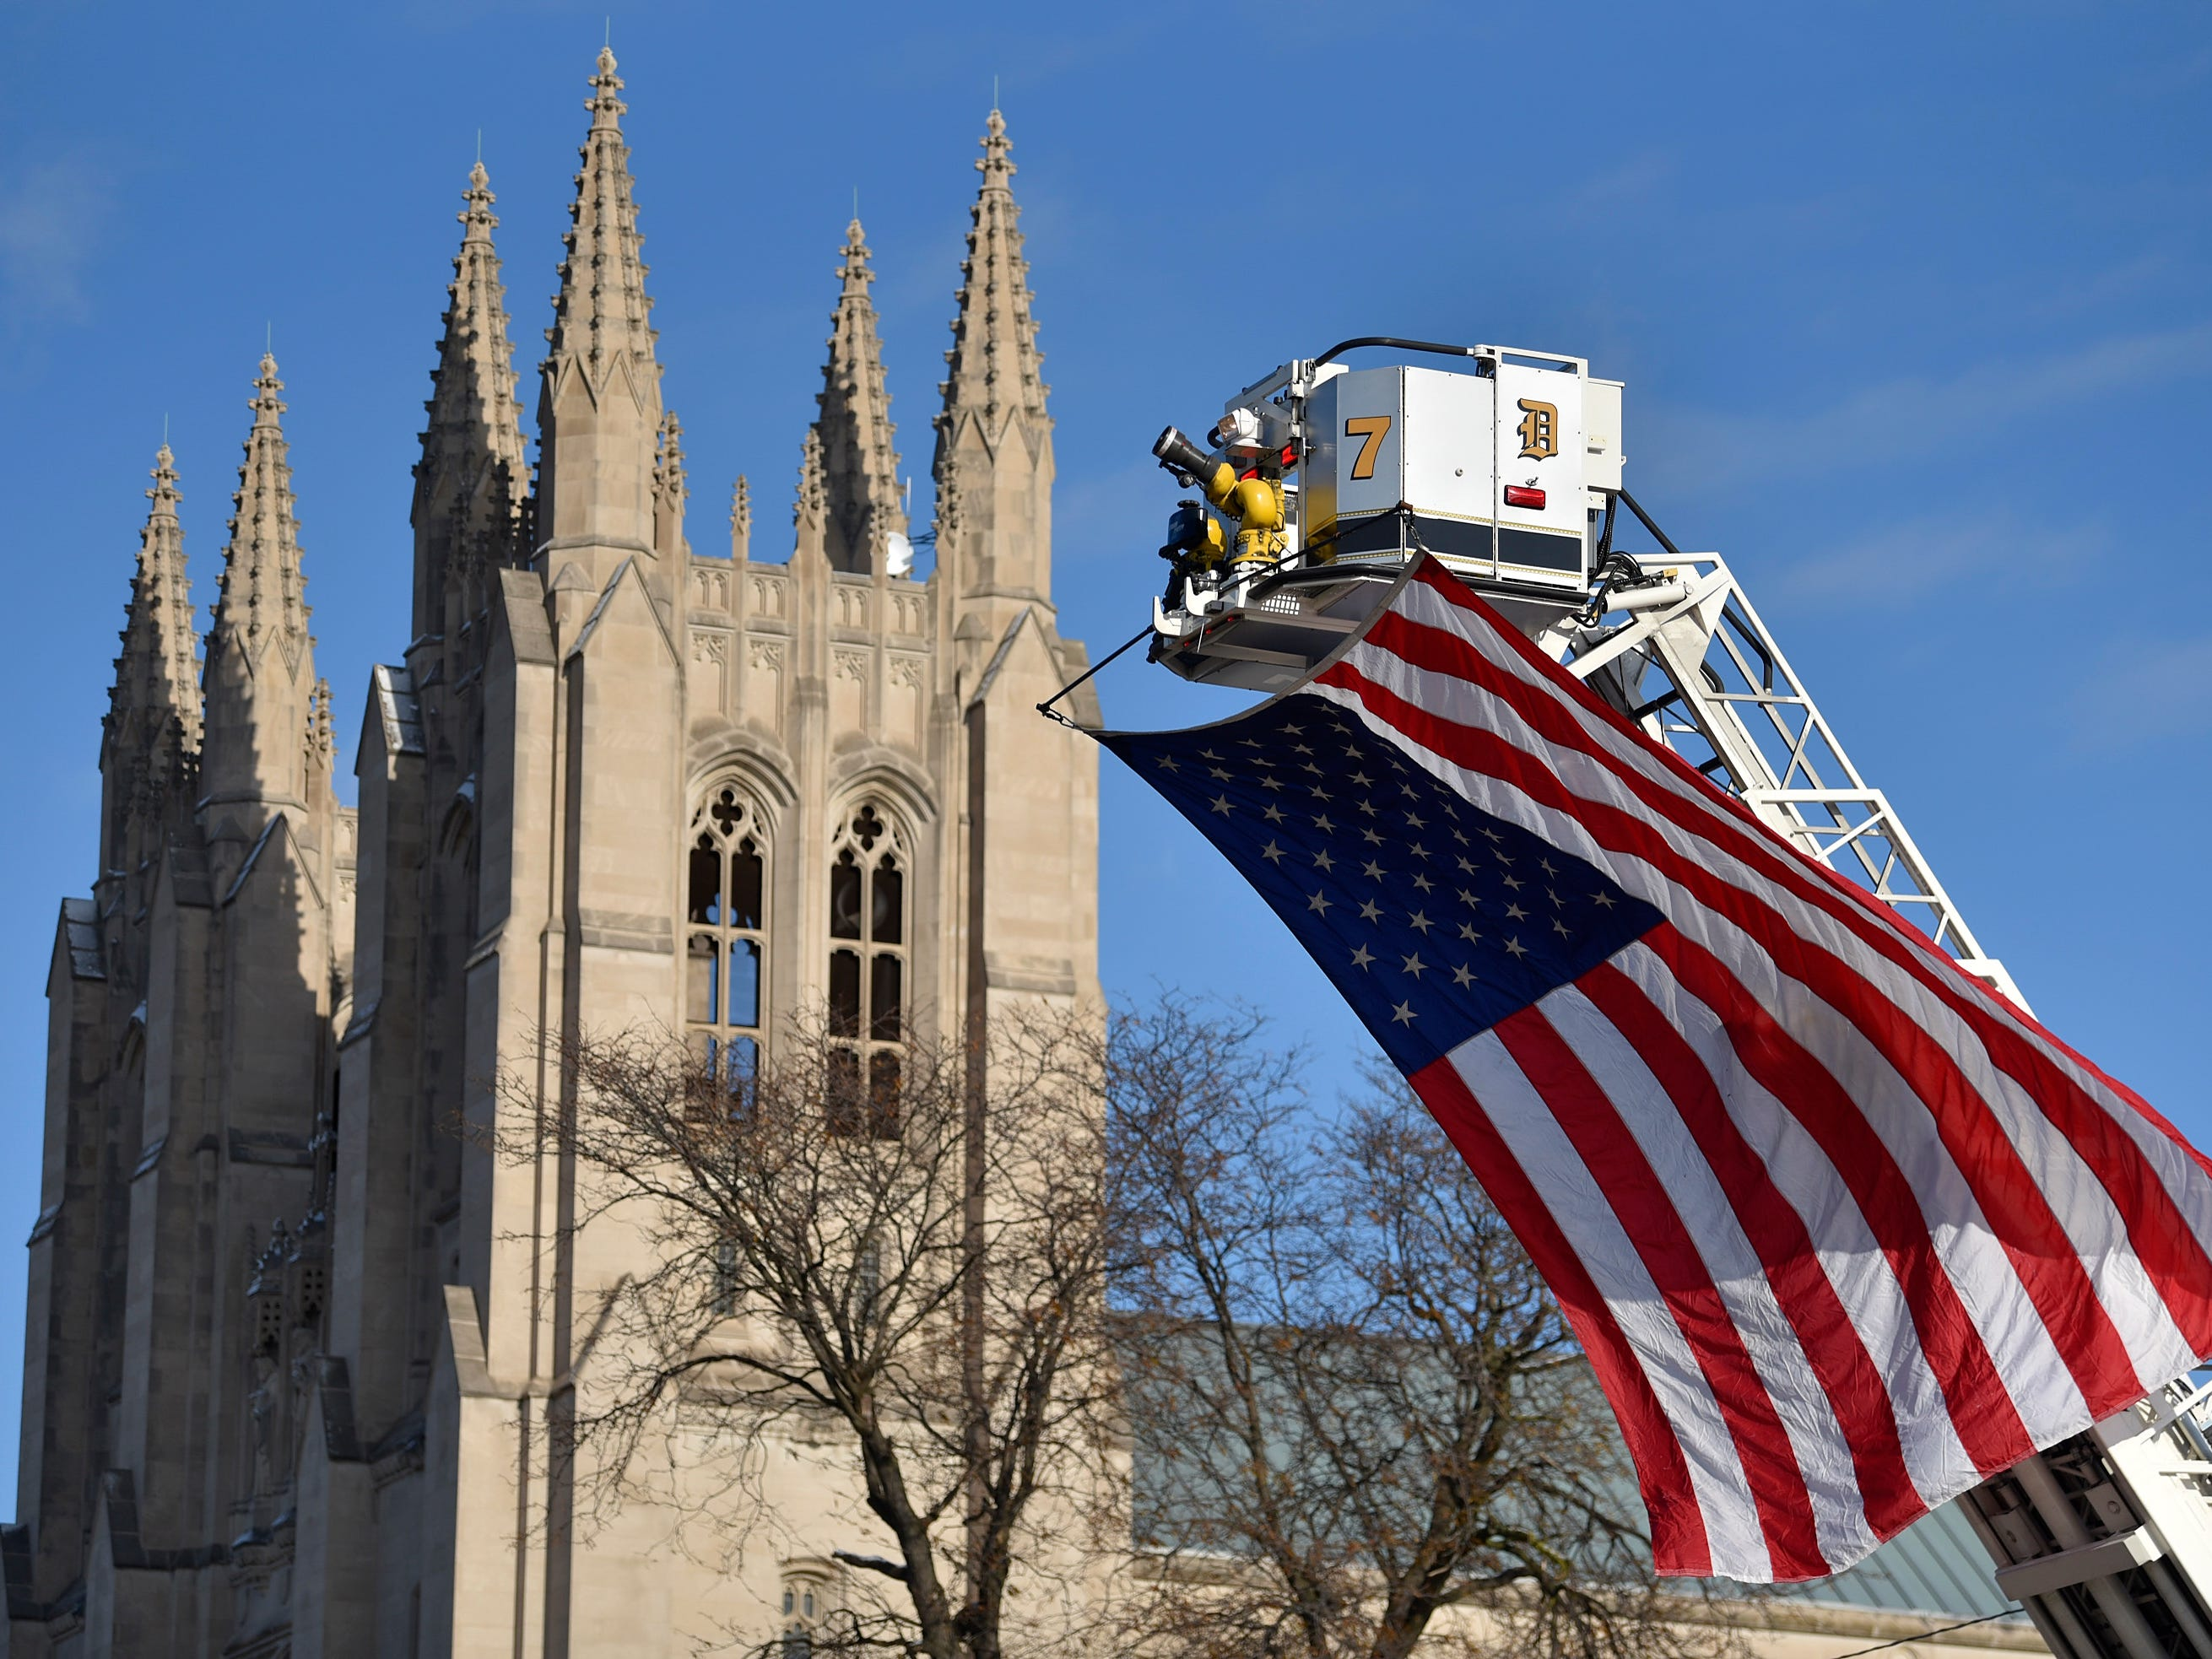 The U.S. flag flies from the platform of Detroit Fire Department Ladder 7 as hundreds of firefighters, family members and friends pay their respects to fallen Detroit firefighter Michael Lubig in a service at the Cathedral of the Most Blessed Sacrament in Detroit, Tuesday, Nov. 20, 2018.